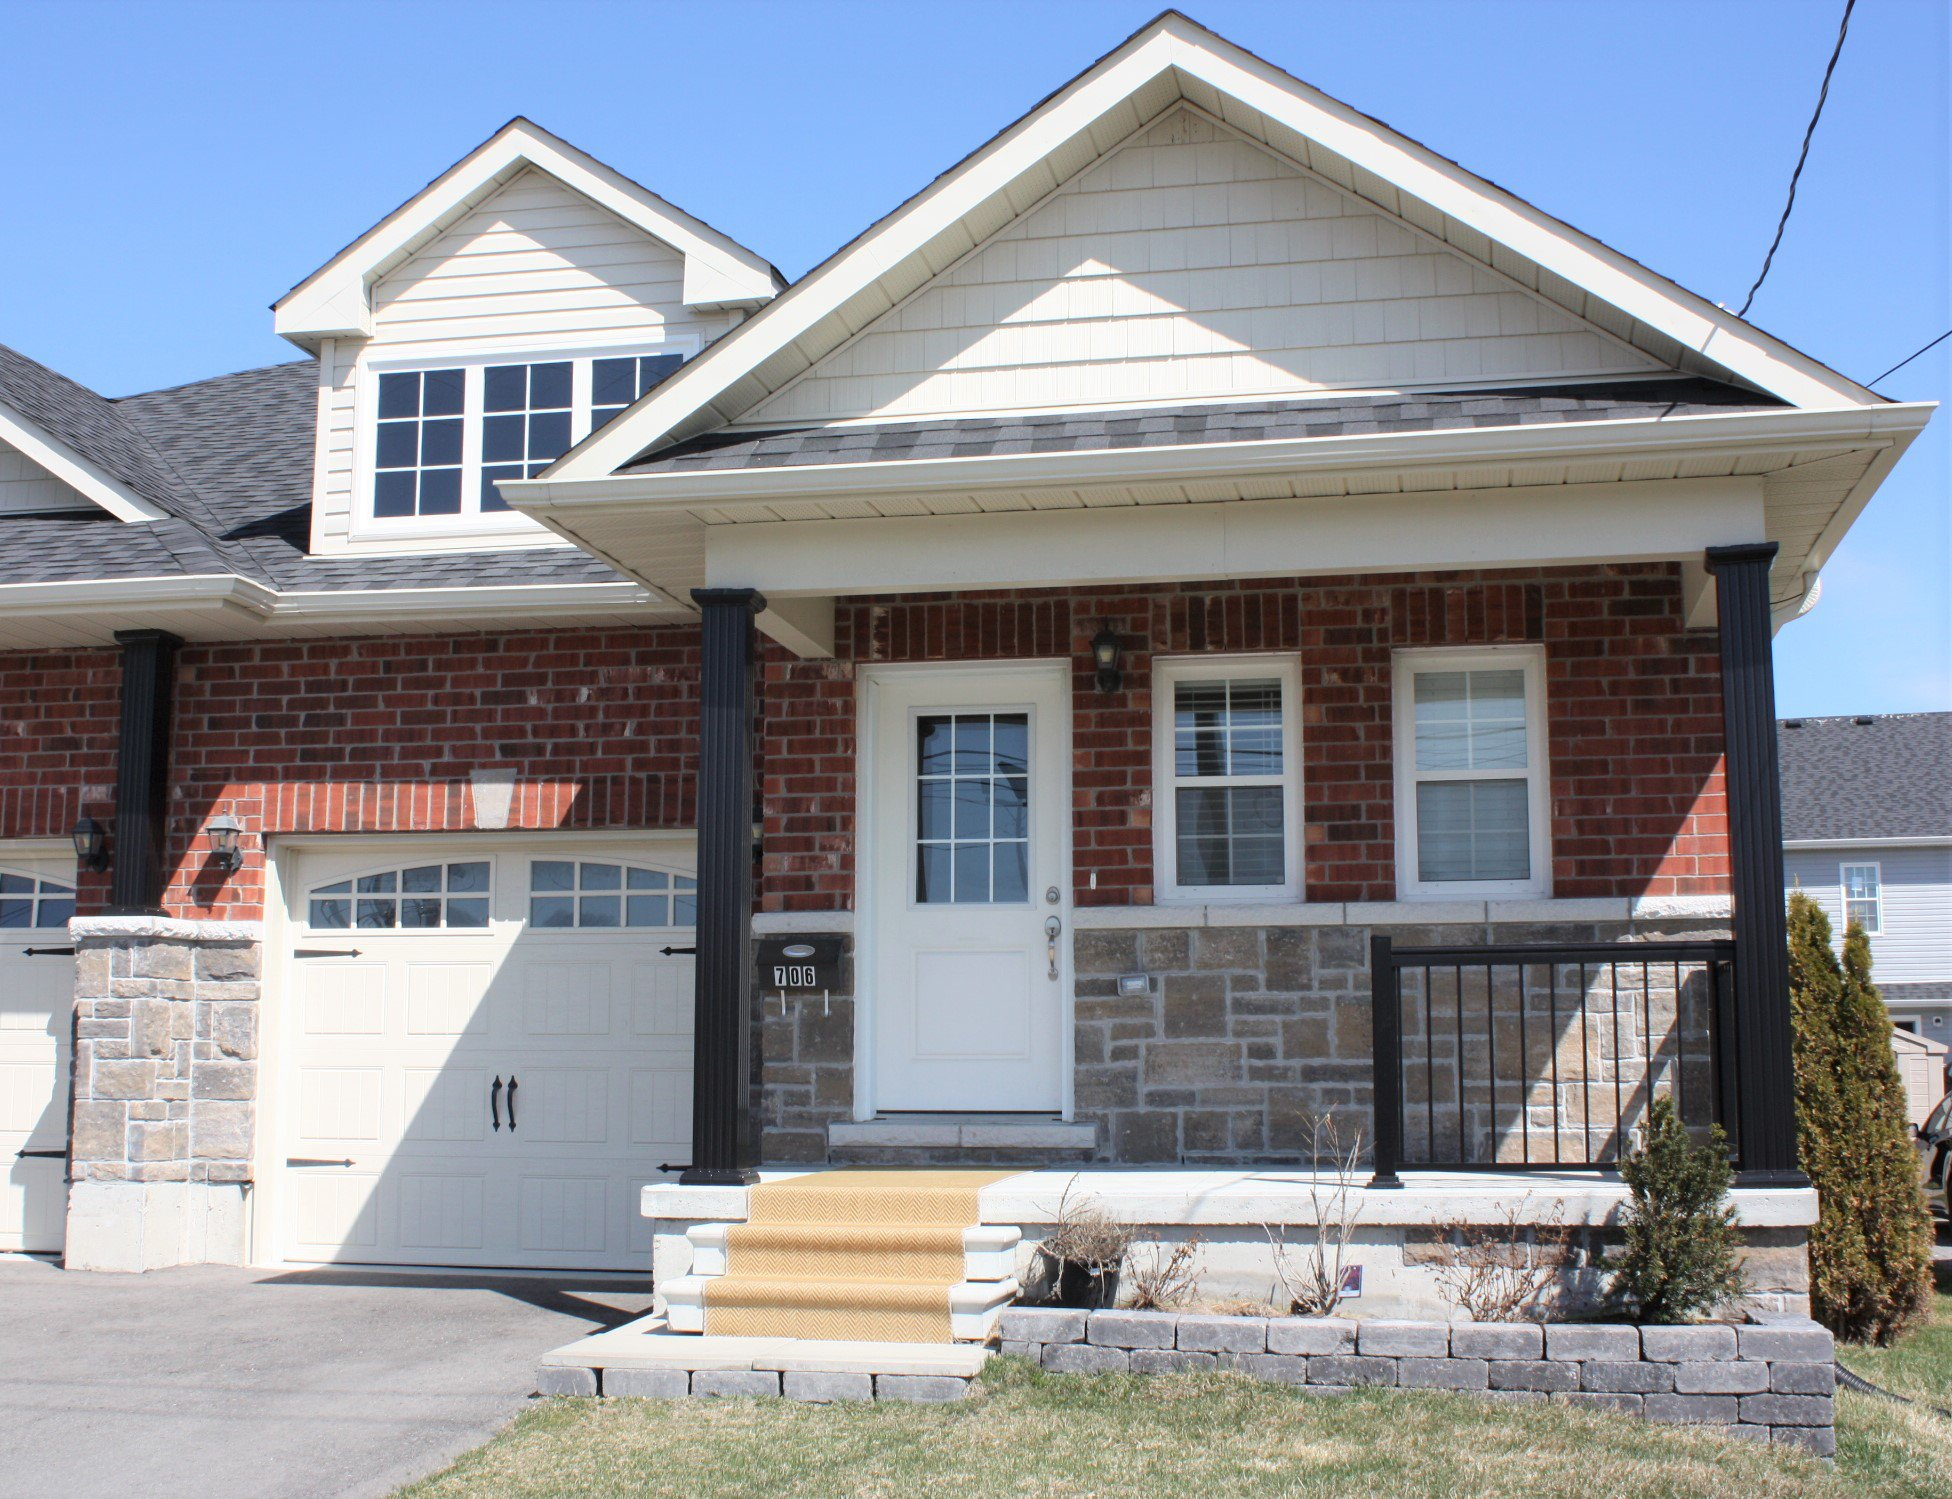 Photo 22: Photos: 706 Ontario Street in Cobourg: Residential Attached for sale : MLS®# 254262